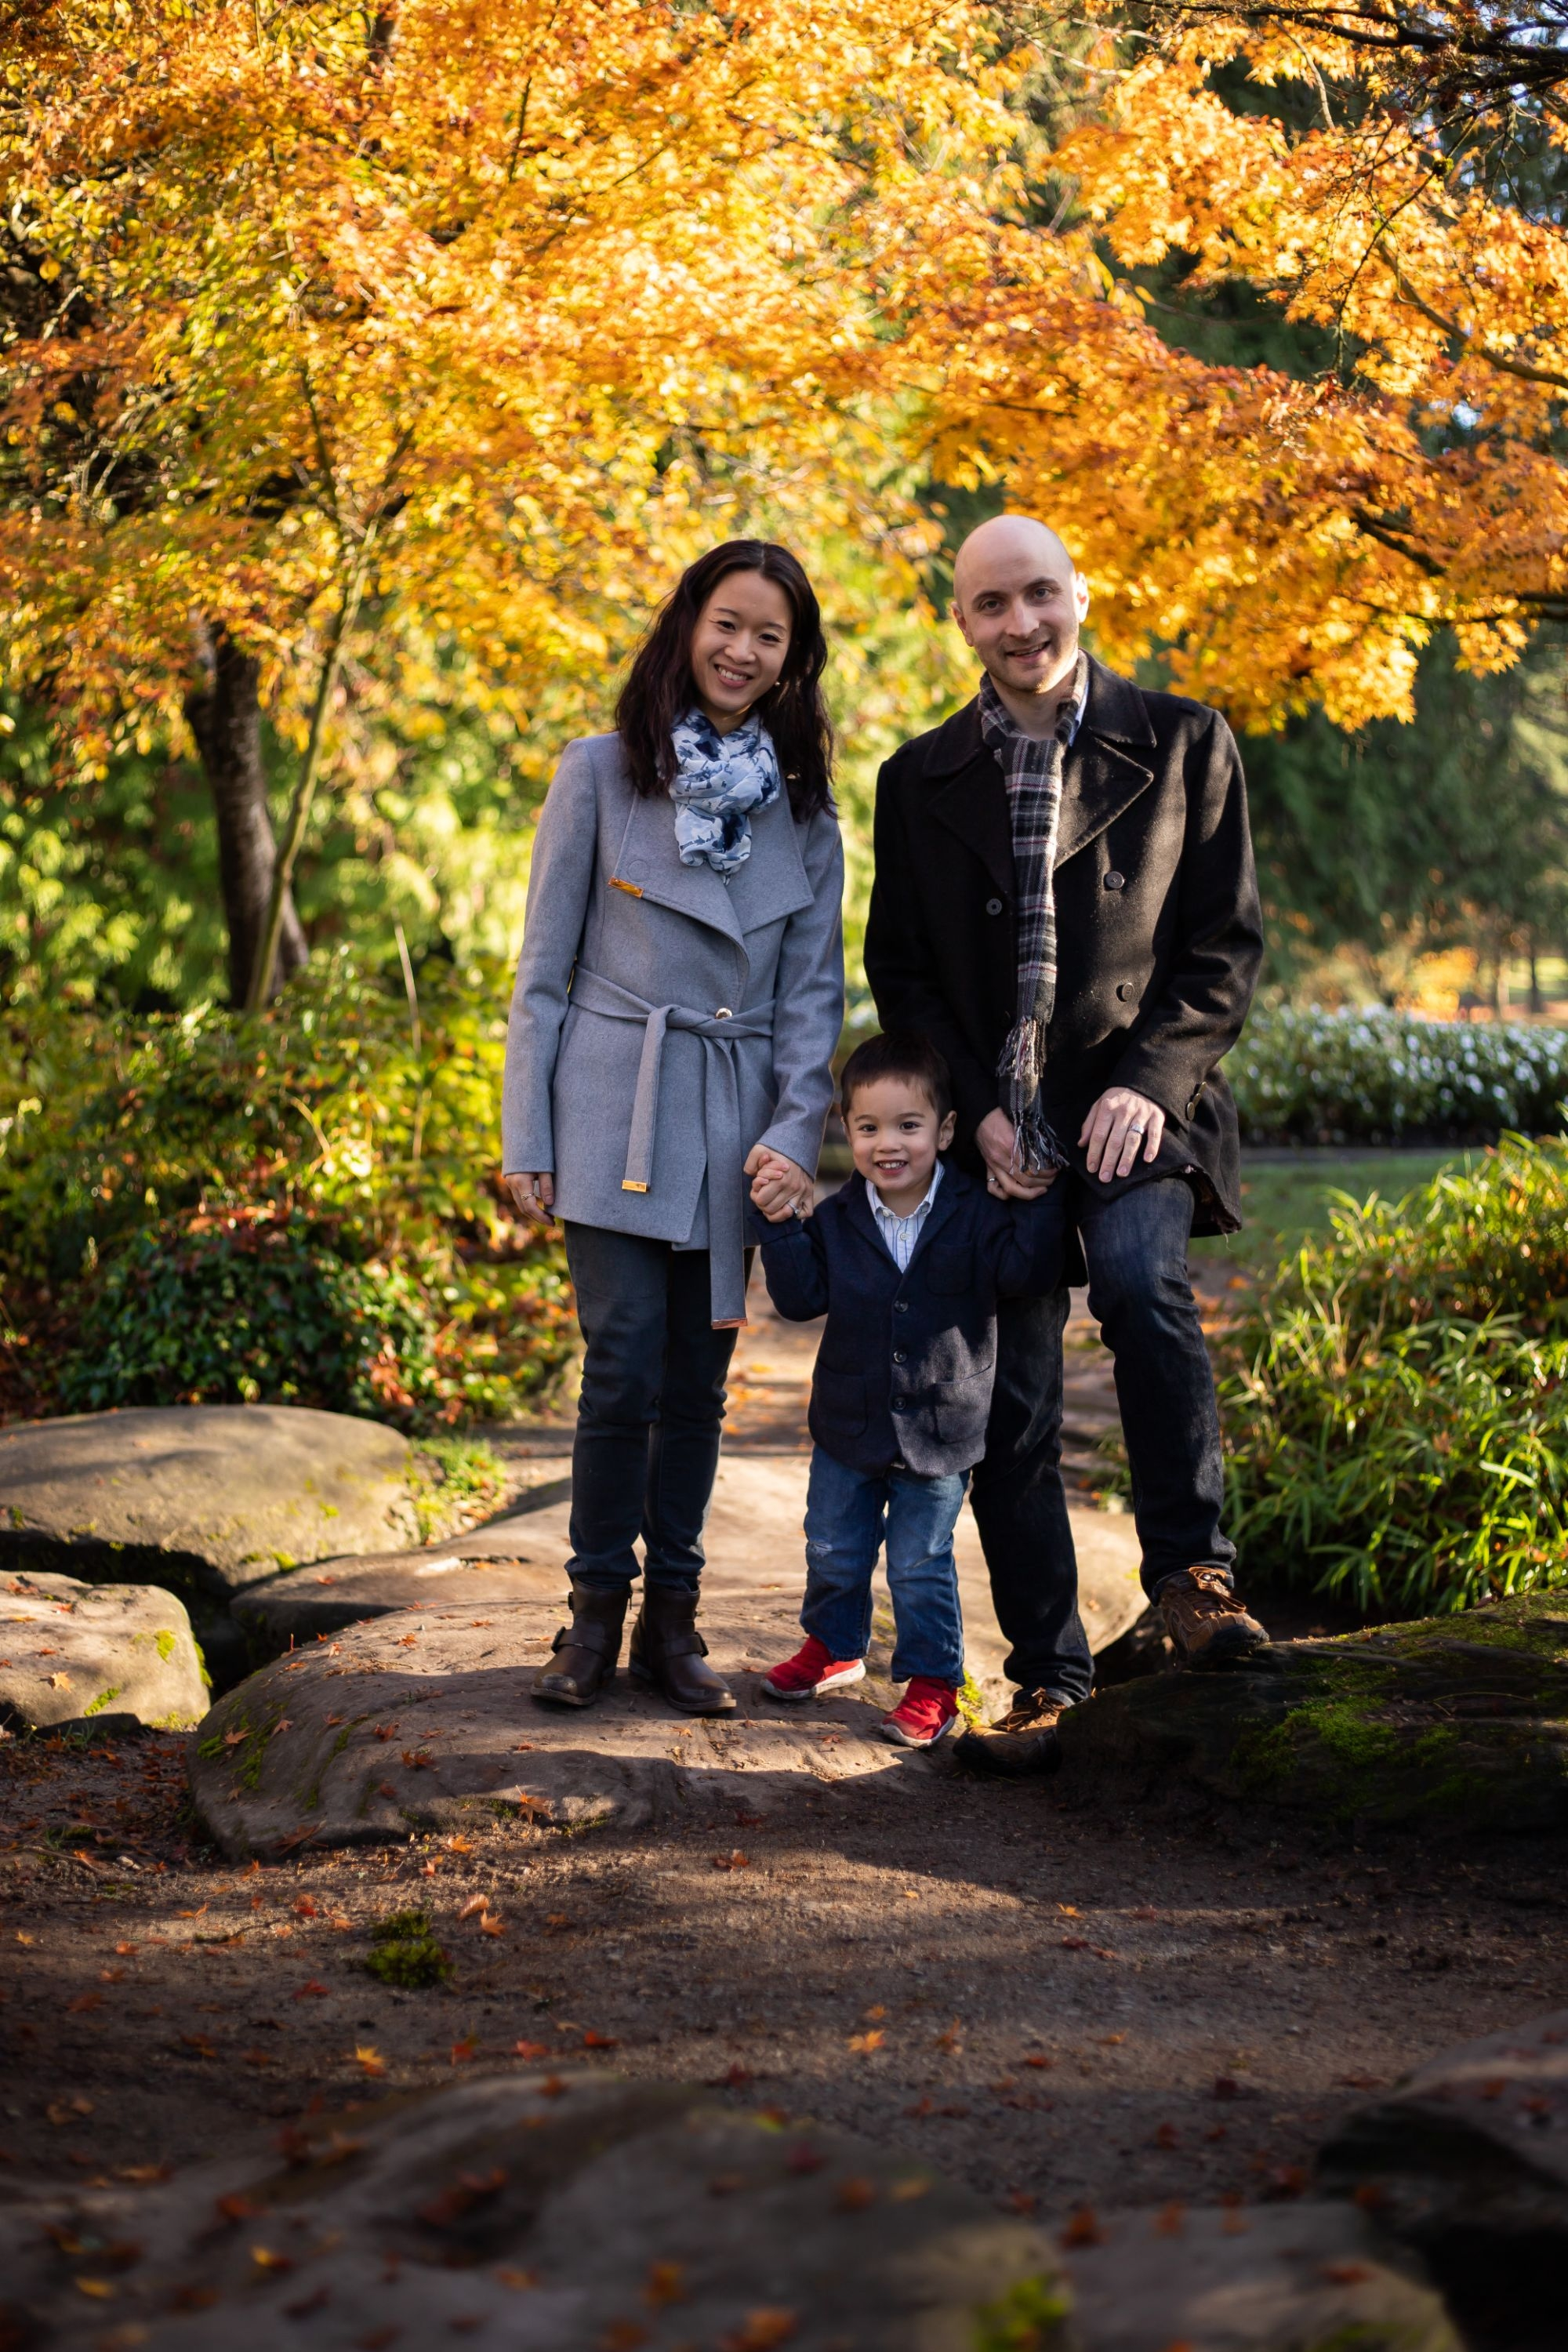 Hannah T. Photography's Central Park Family Mini Session Family Photography